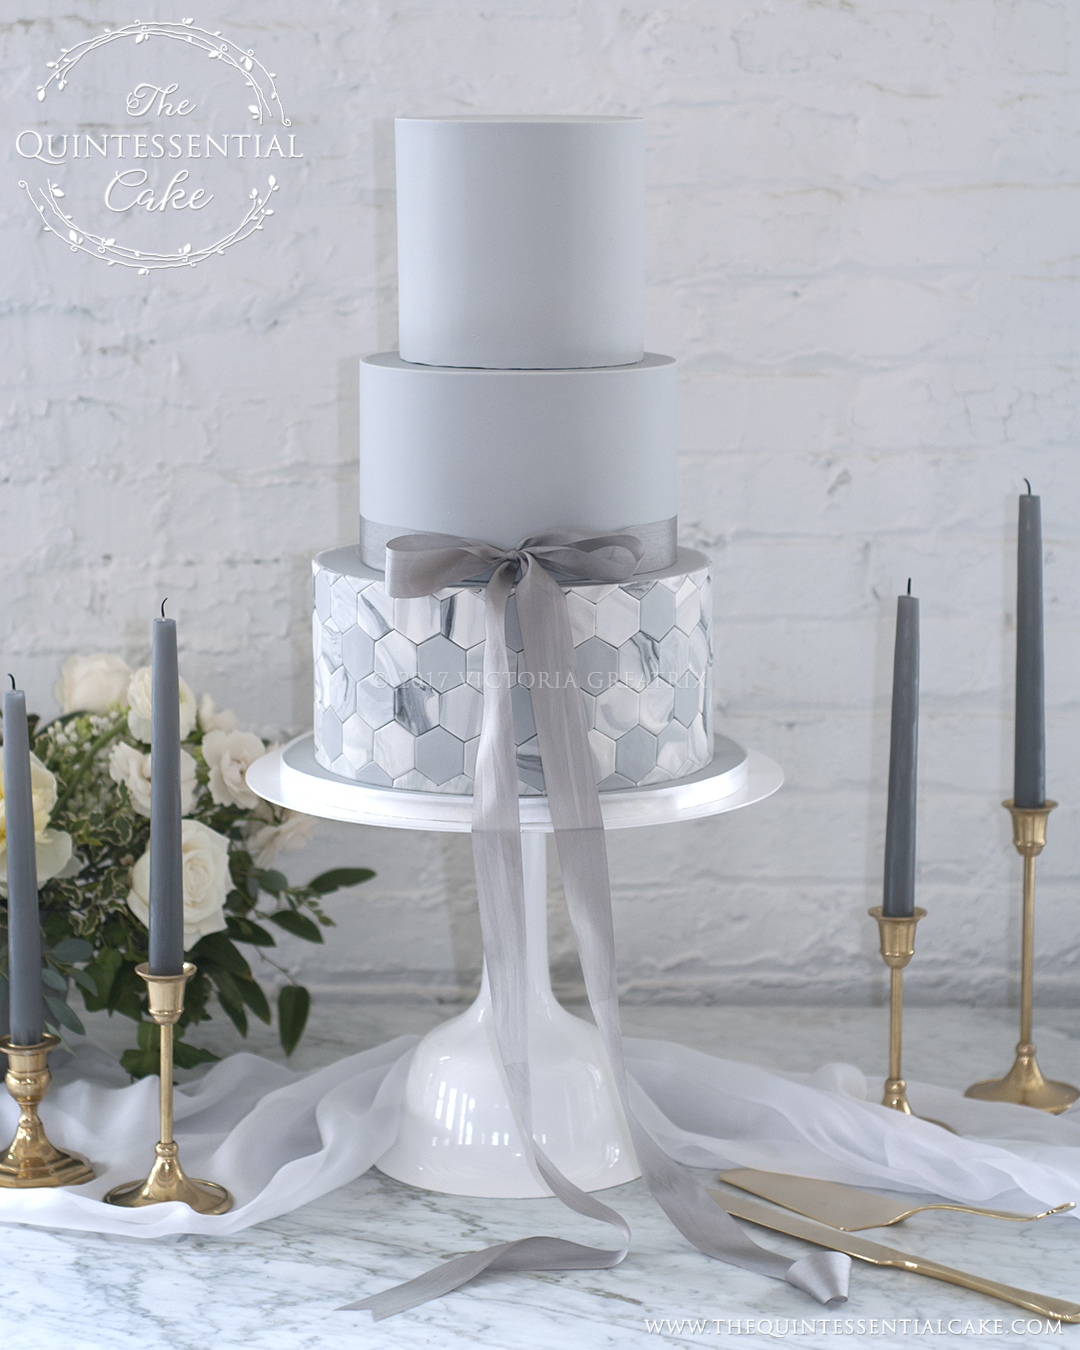 Modern Grey Wedding Cake with Marble Tiling | The Quintessential Cake | Chicago | Luxury Wedding Cakes | Company 251